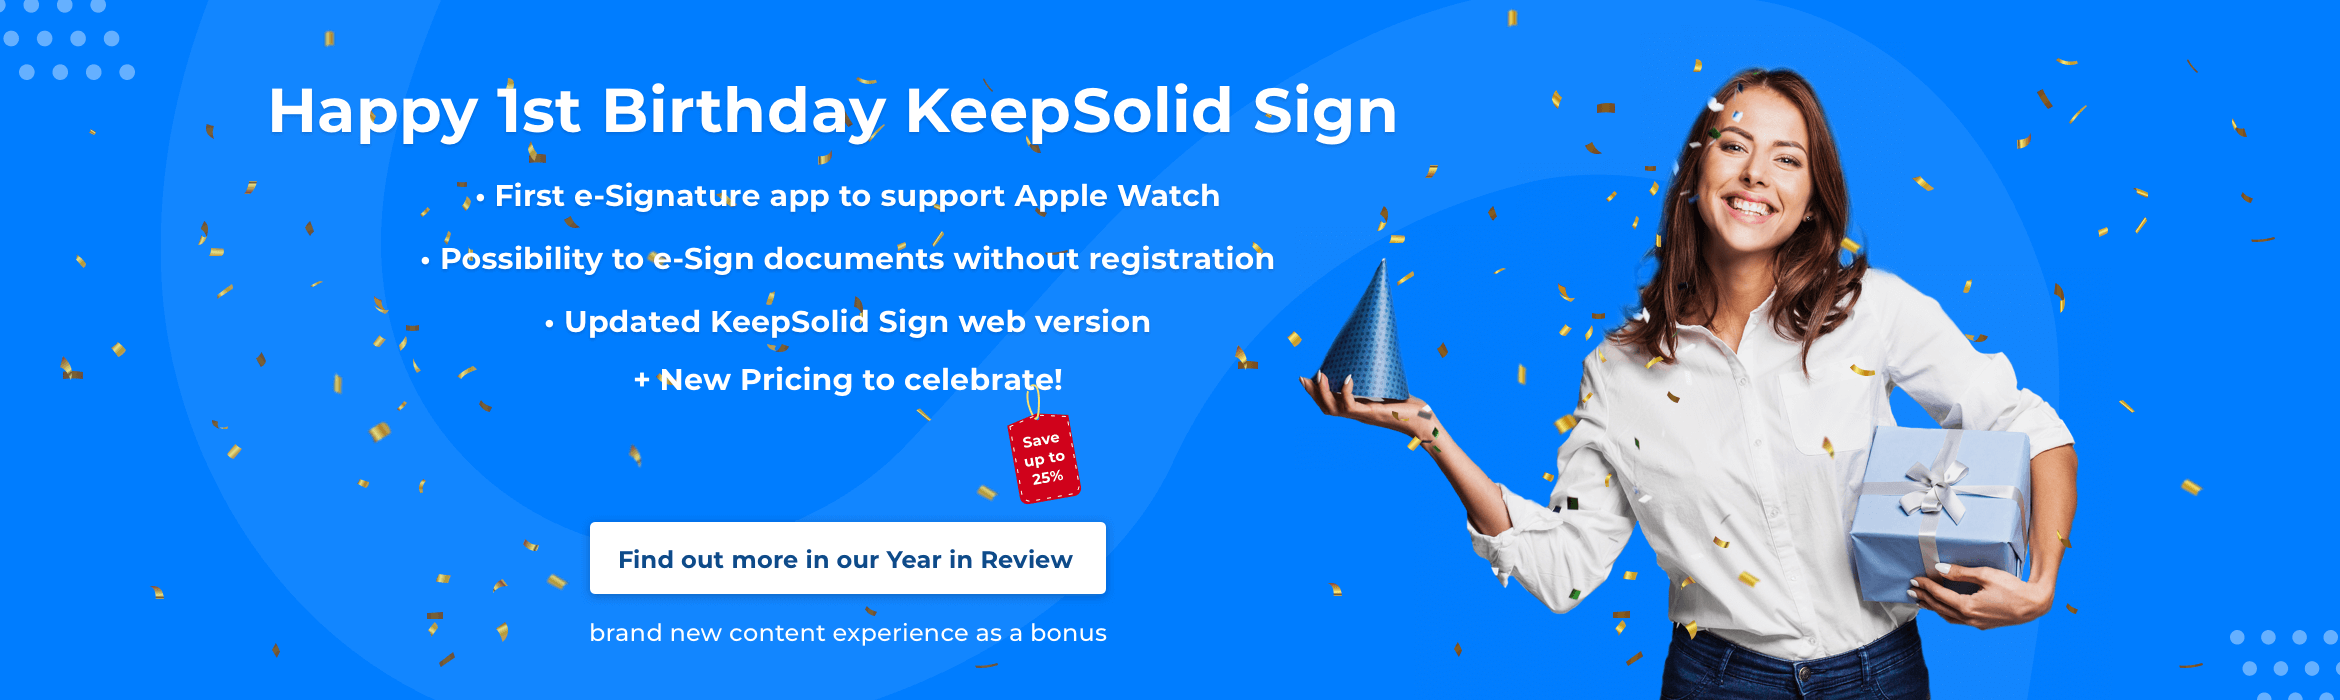 KeepSolid Sign Birthday